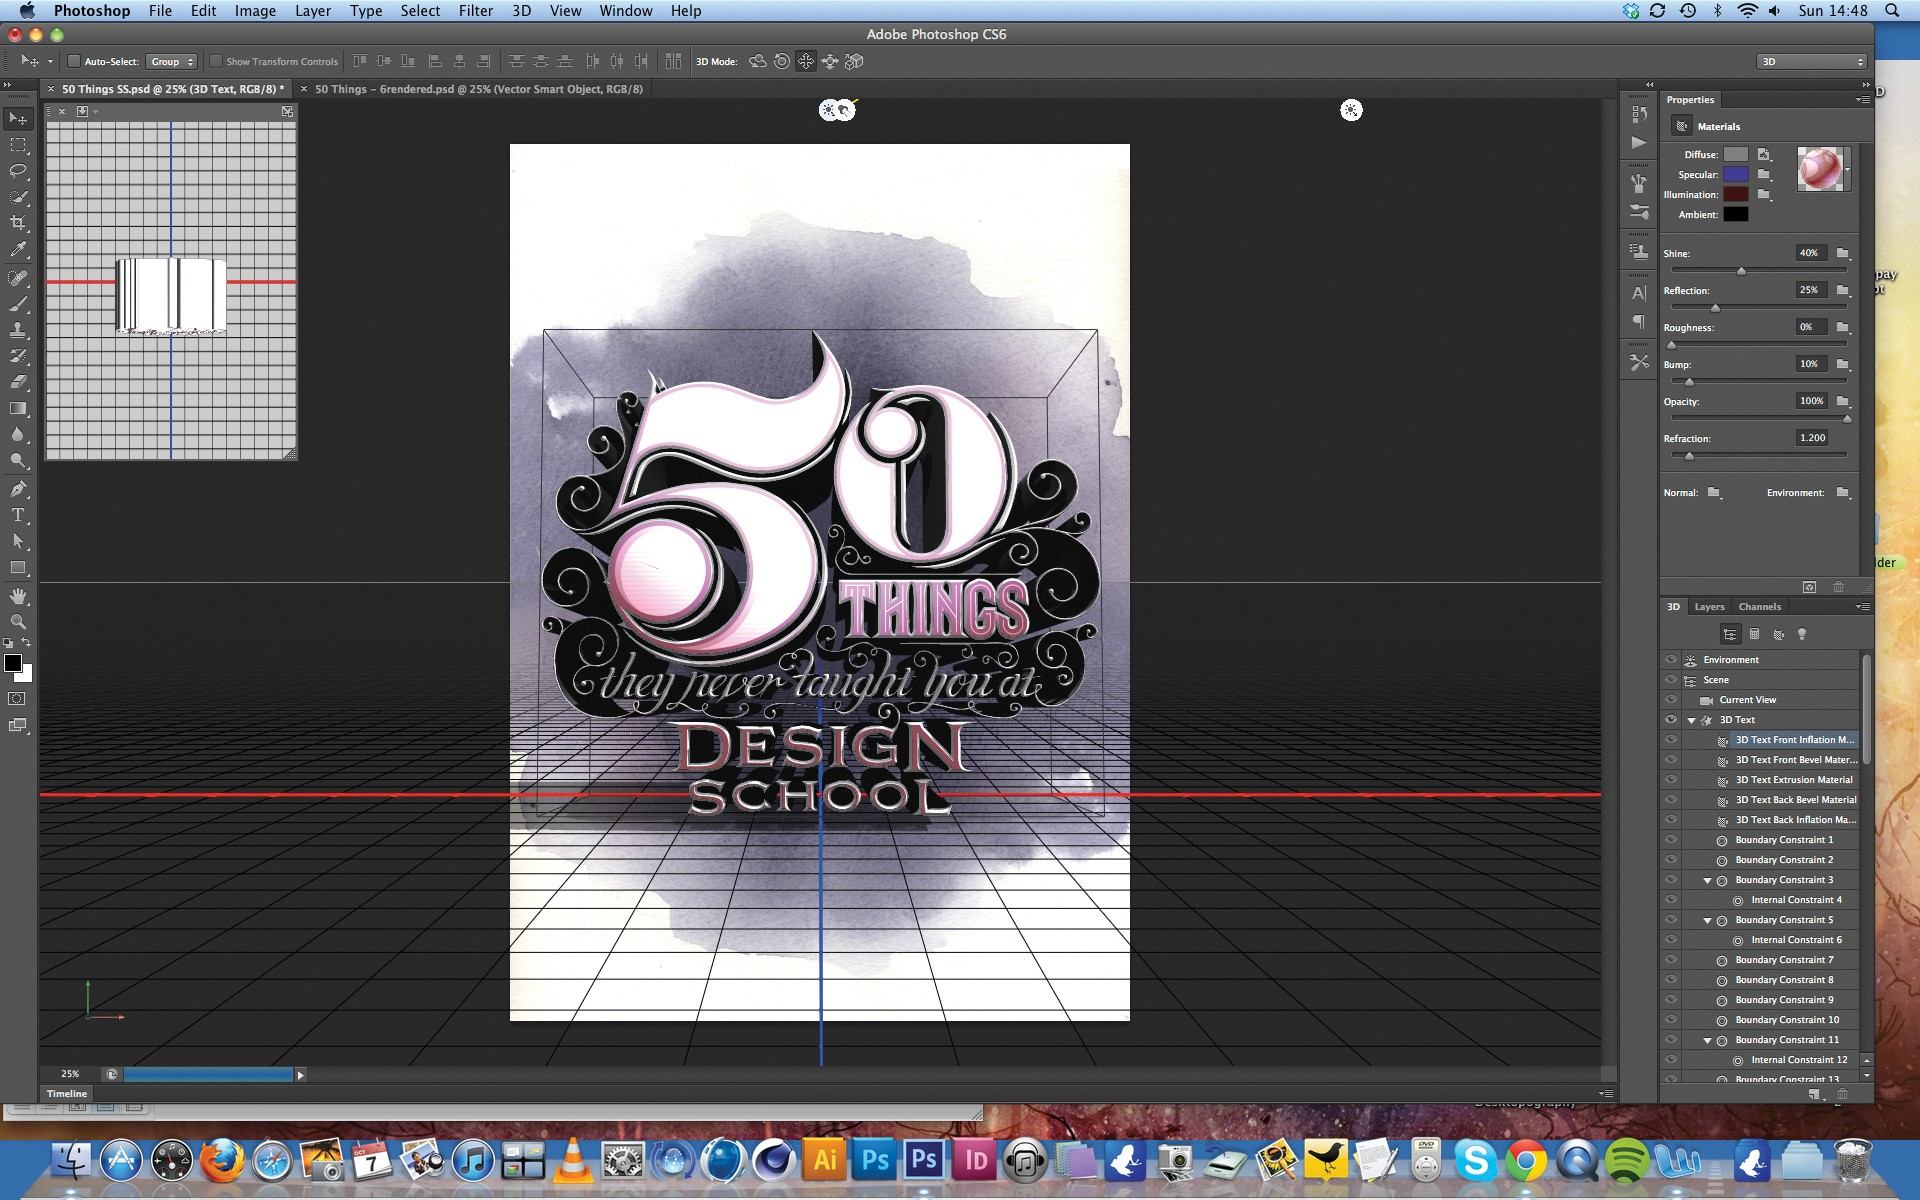 Photoshop 3d text effects styles download.